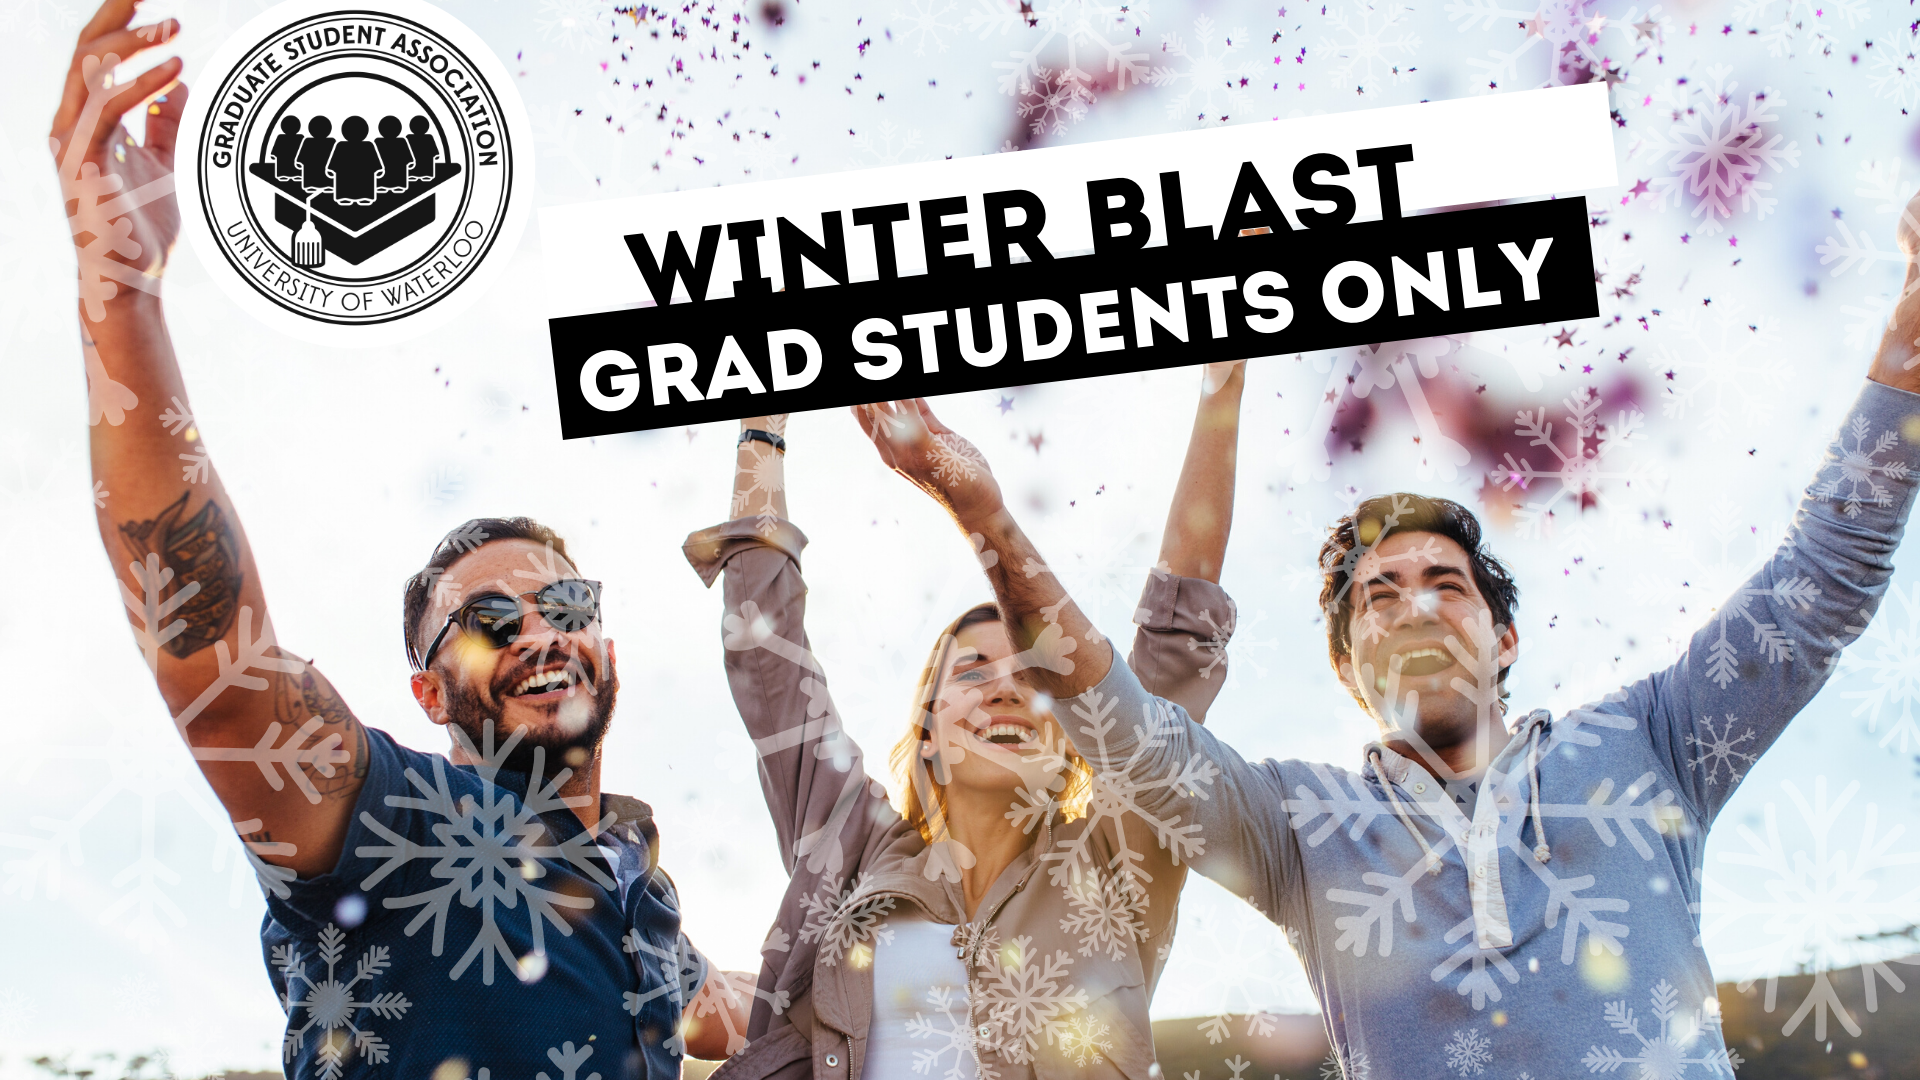 GSA Winter Blast Gradaute Student Party